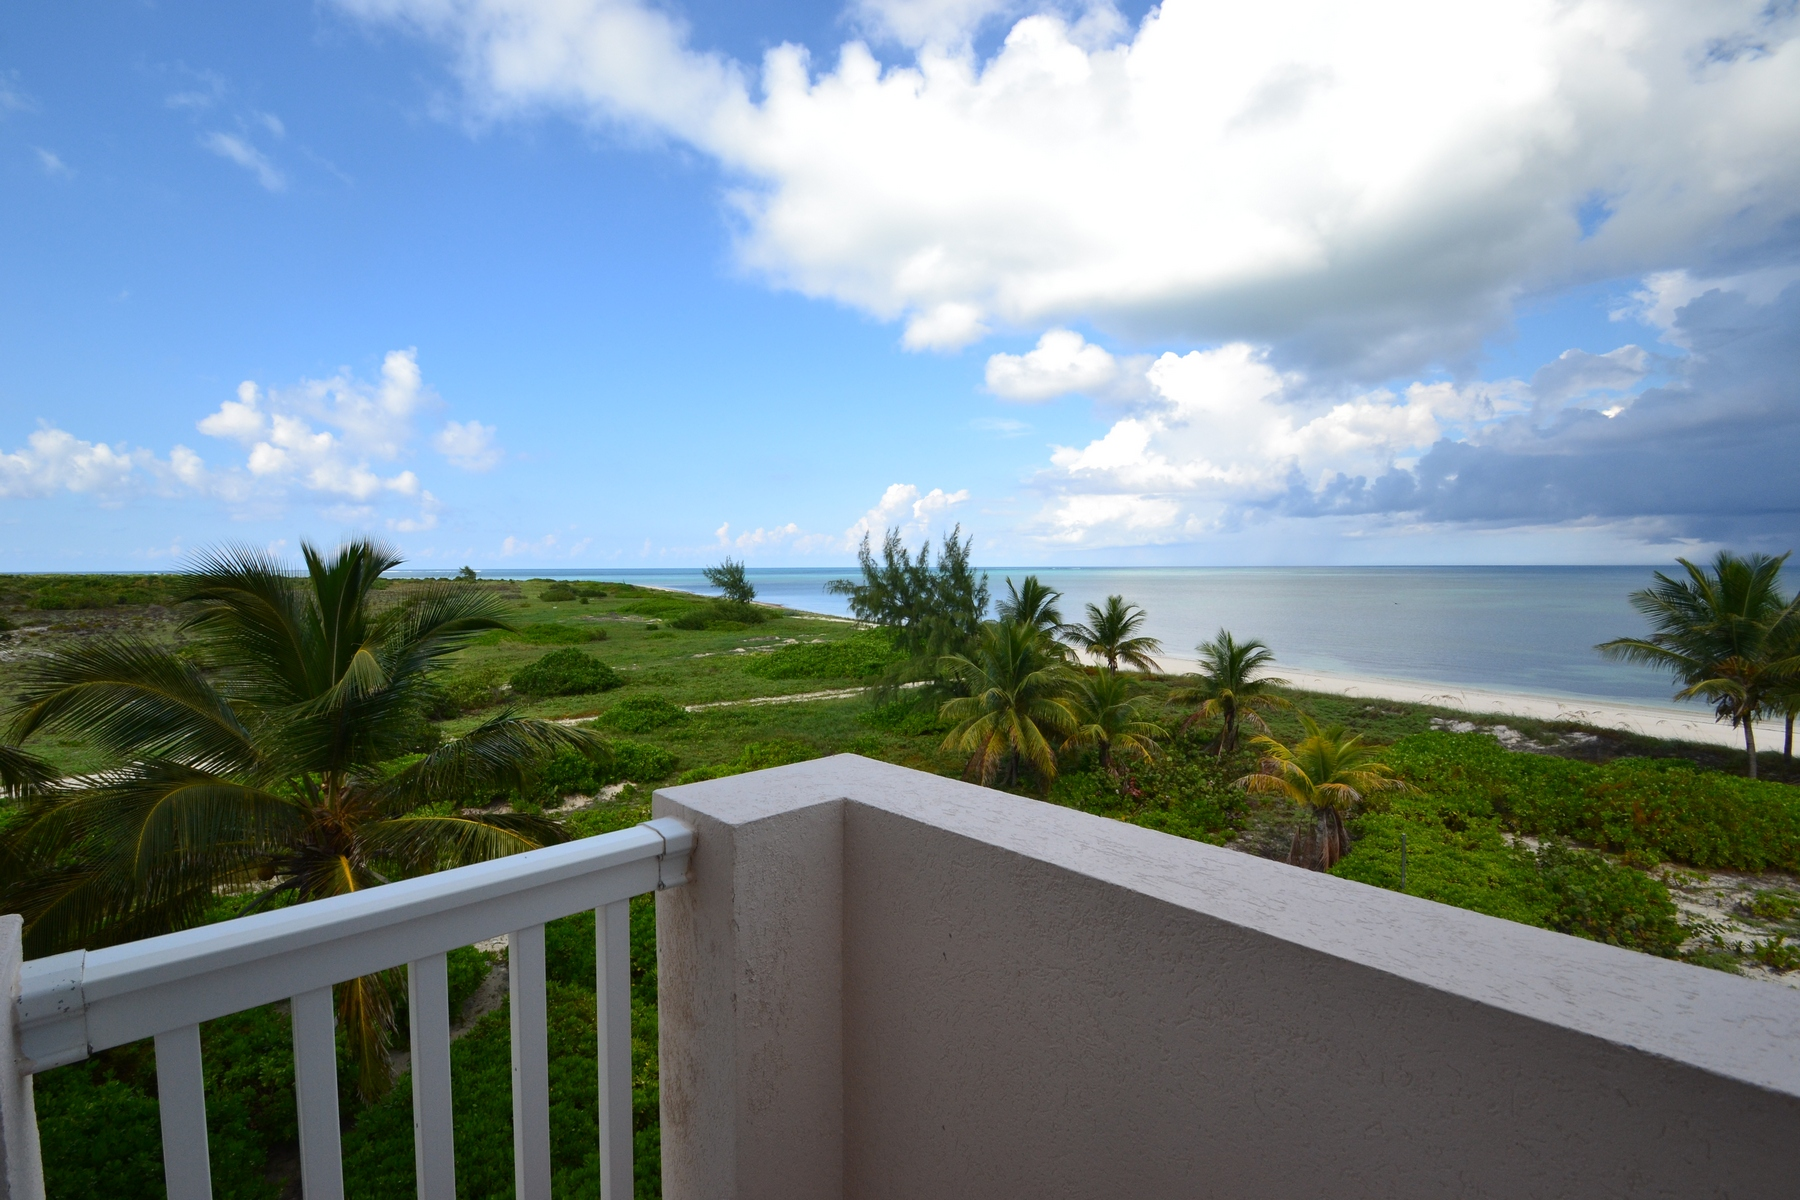 Condominium for Sale at Northwest Point Resort- B1-307 North West Point, Providenciales, Turks And Caicos Islands